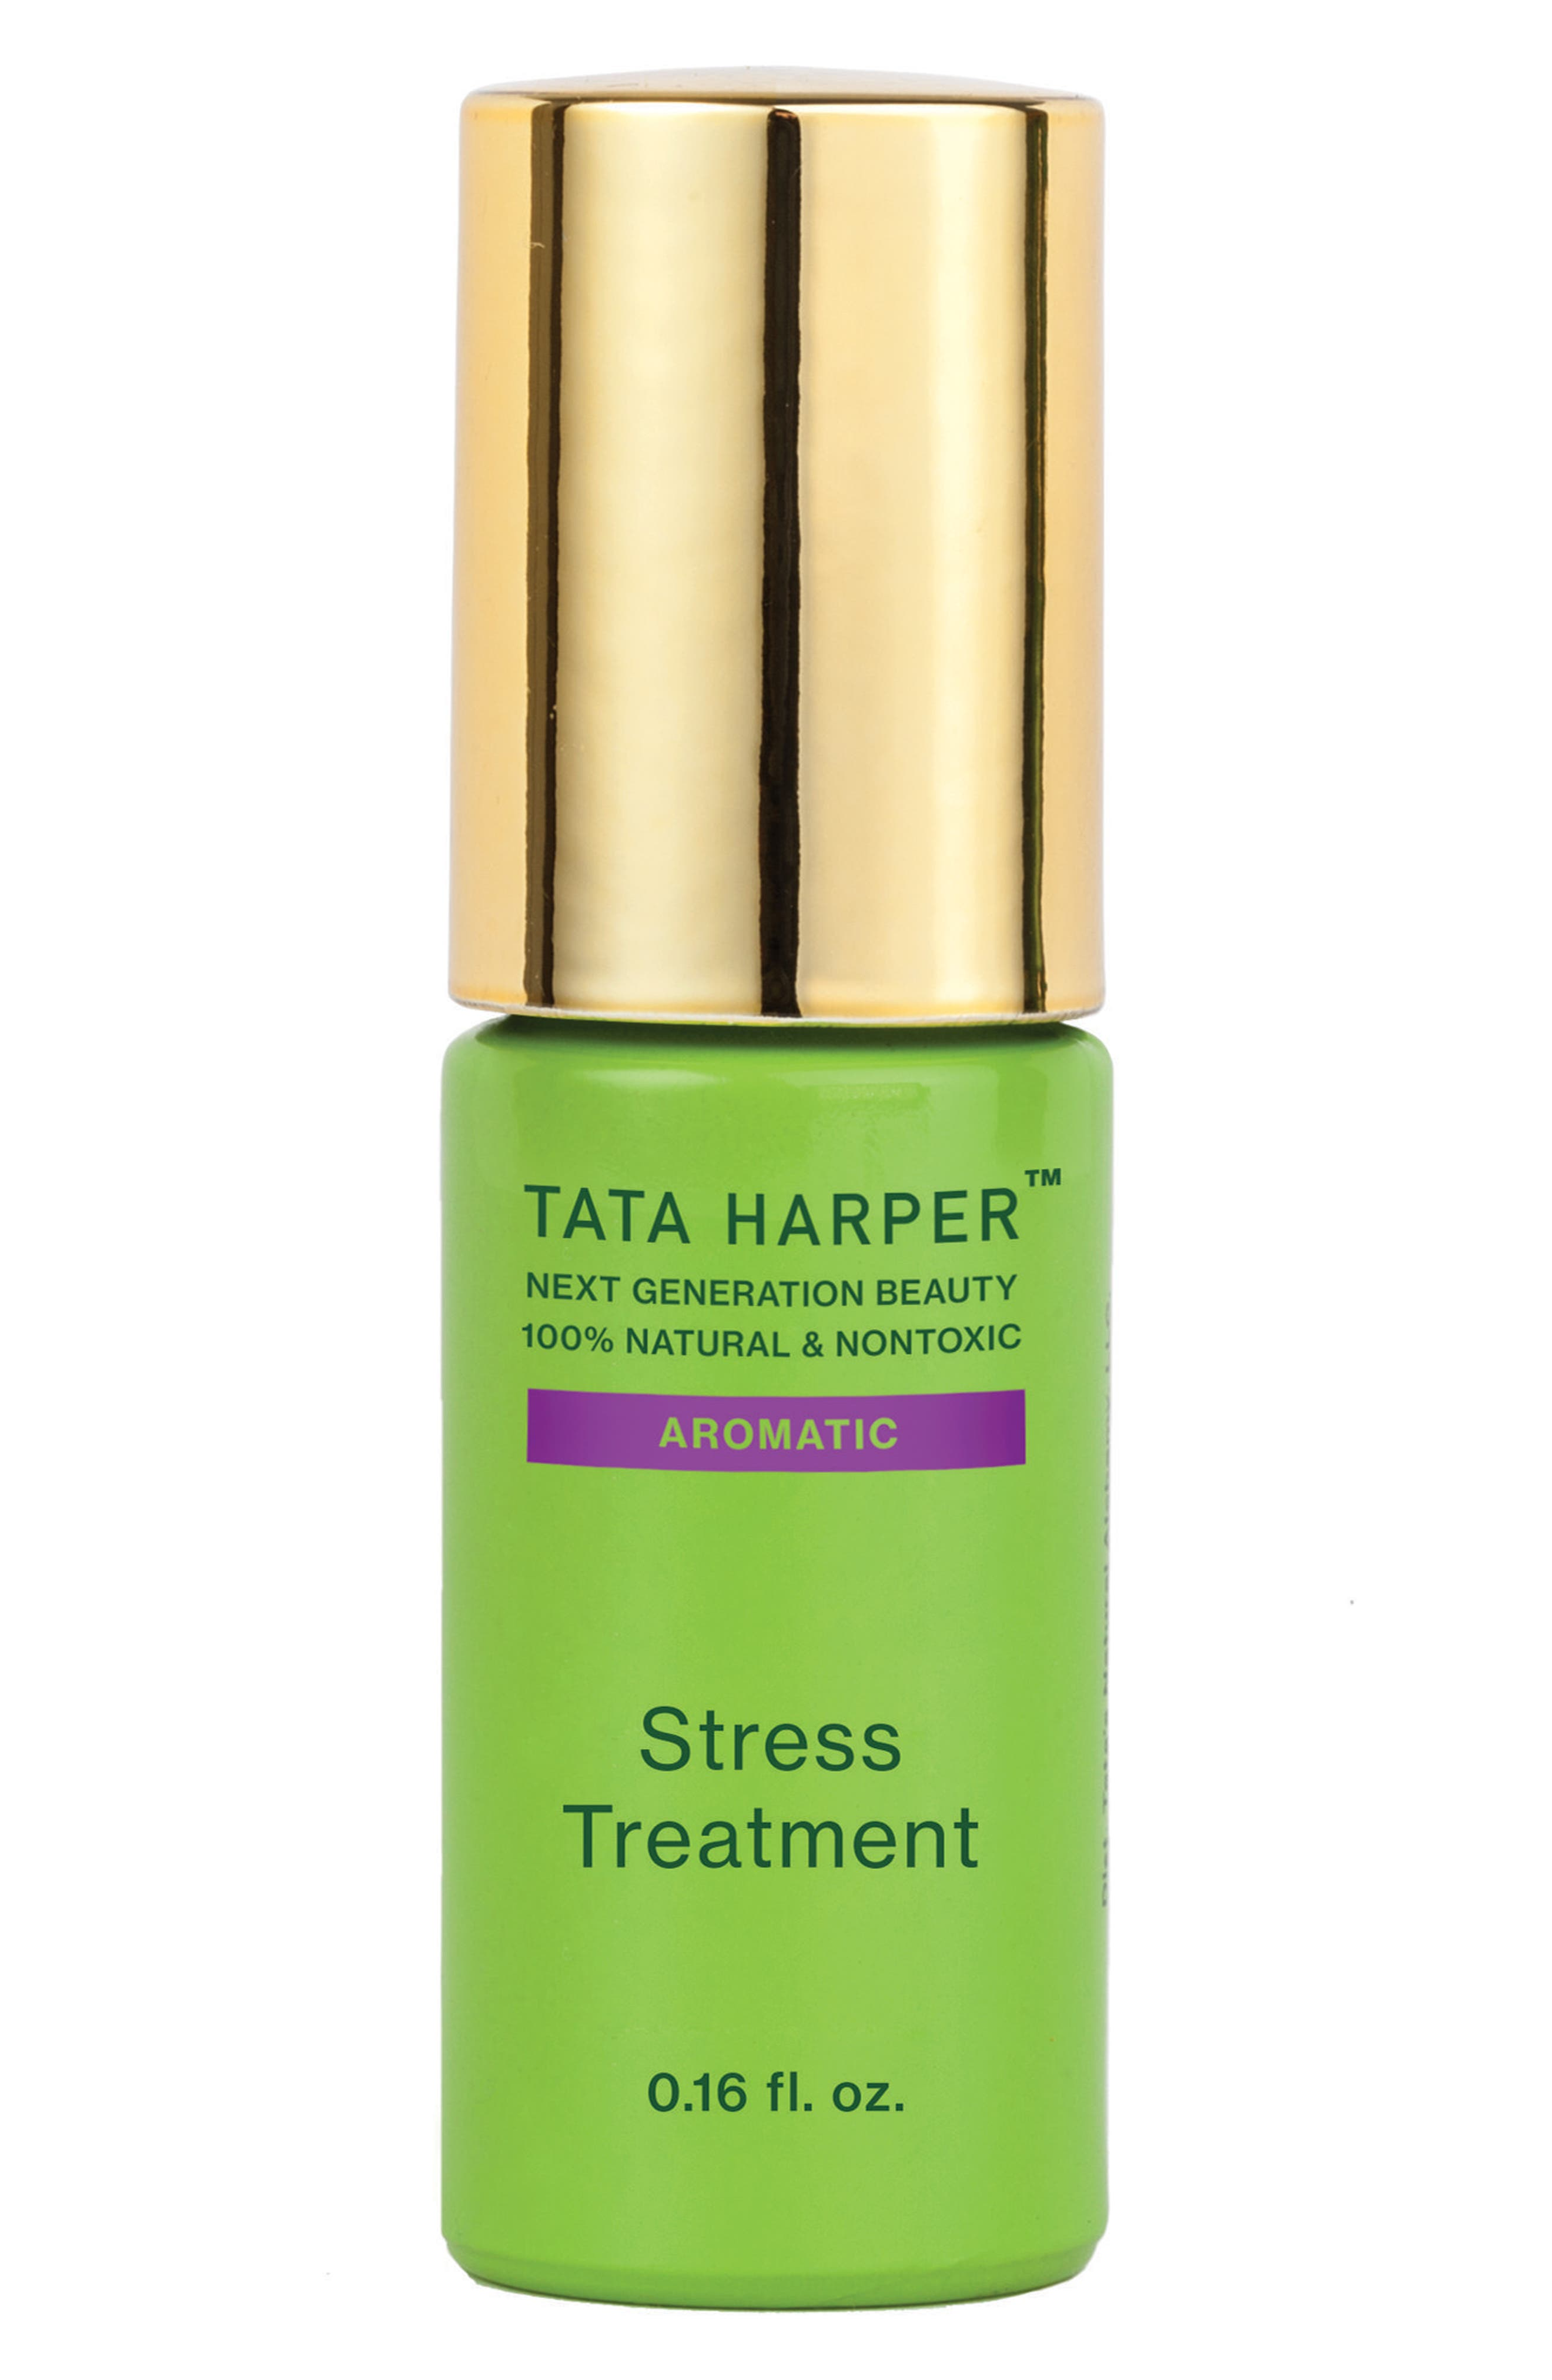 Tata Harper Skincare aromatic stress treatment